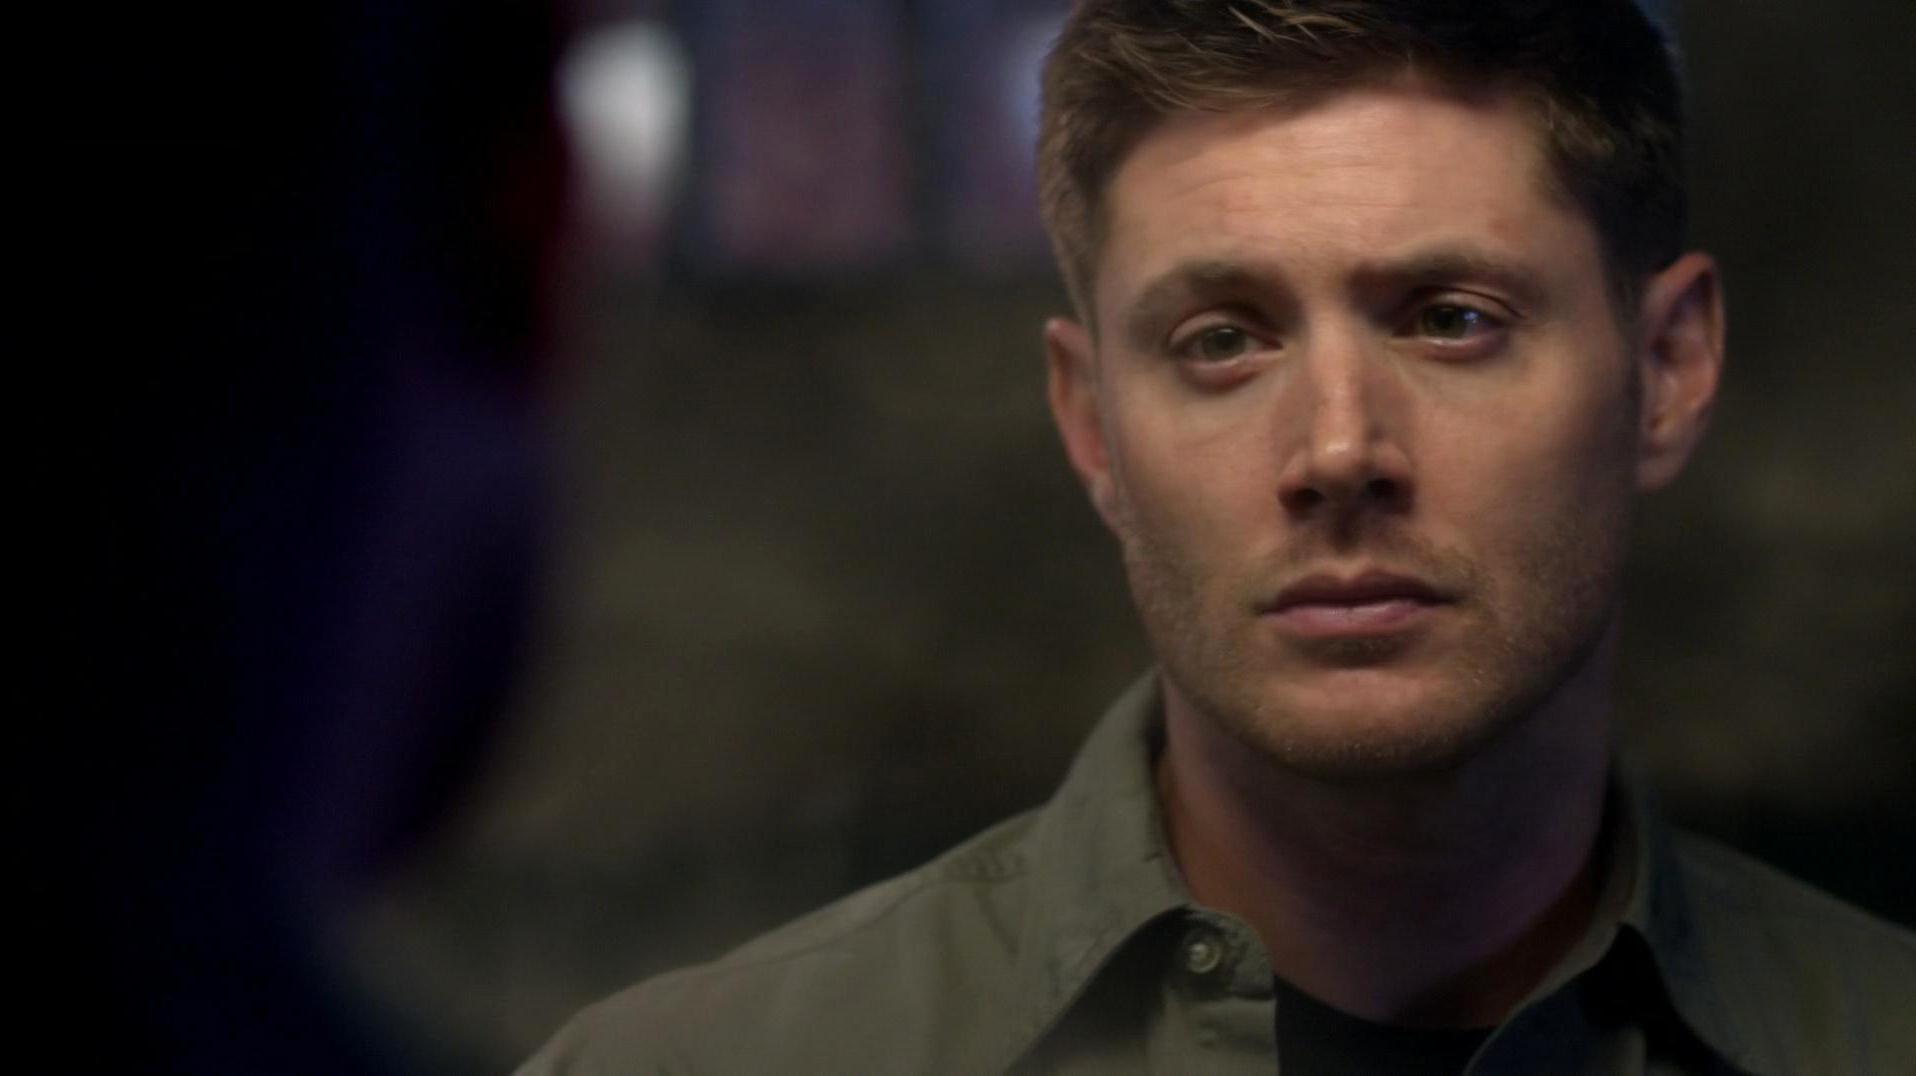 eye color and dean winchester Dean travels around the country, keeping an eye out for the supernatural and battling demons, vampires, ghosts, and anything else that goes bump in the he's been incommunicado for too long, and dean's starting to get worried now he has to convince sam to leave stanford and find their father.